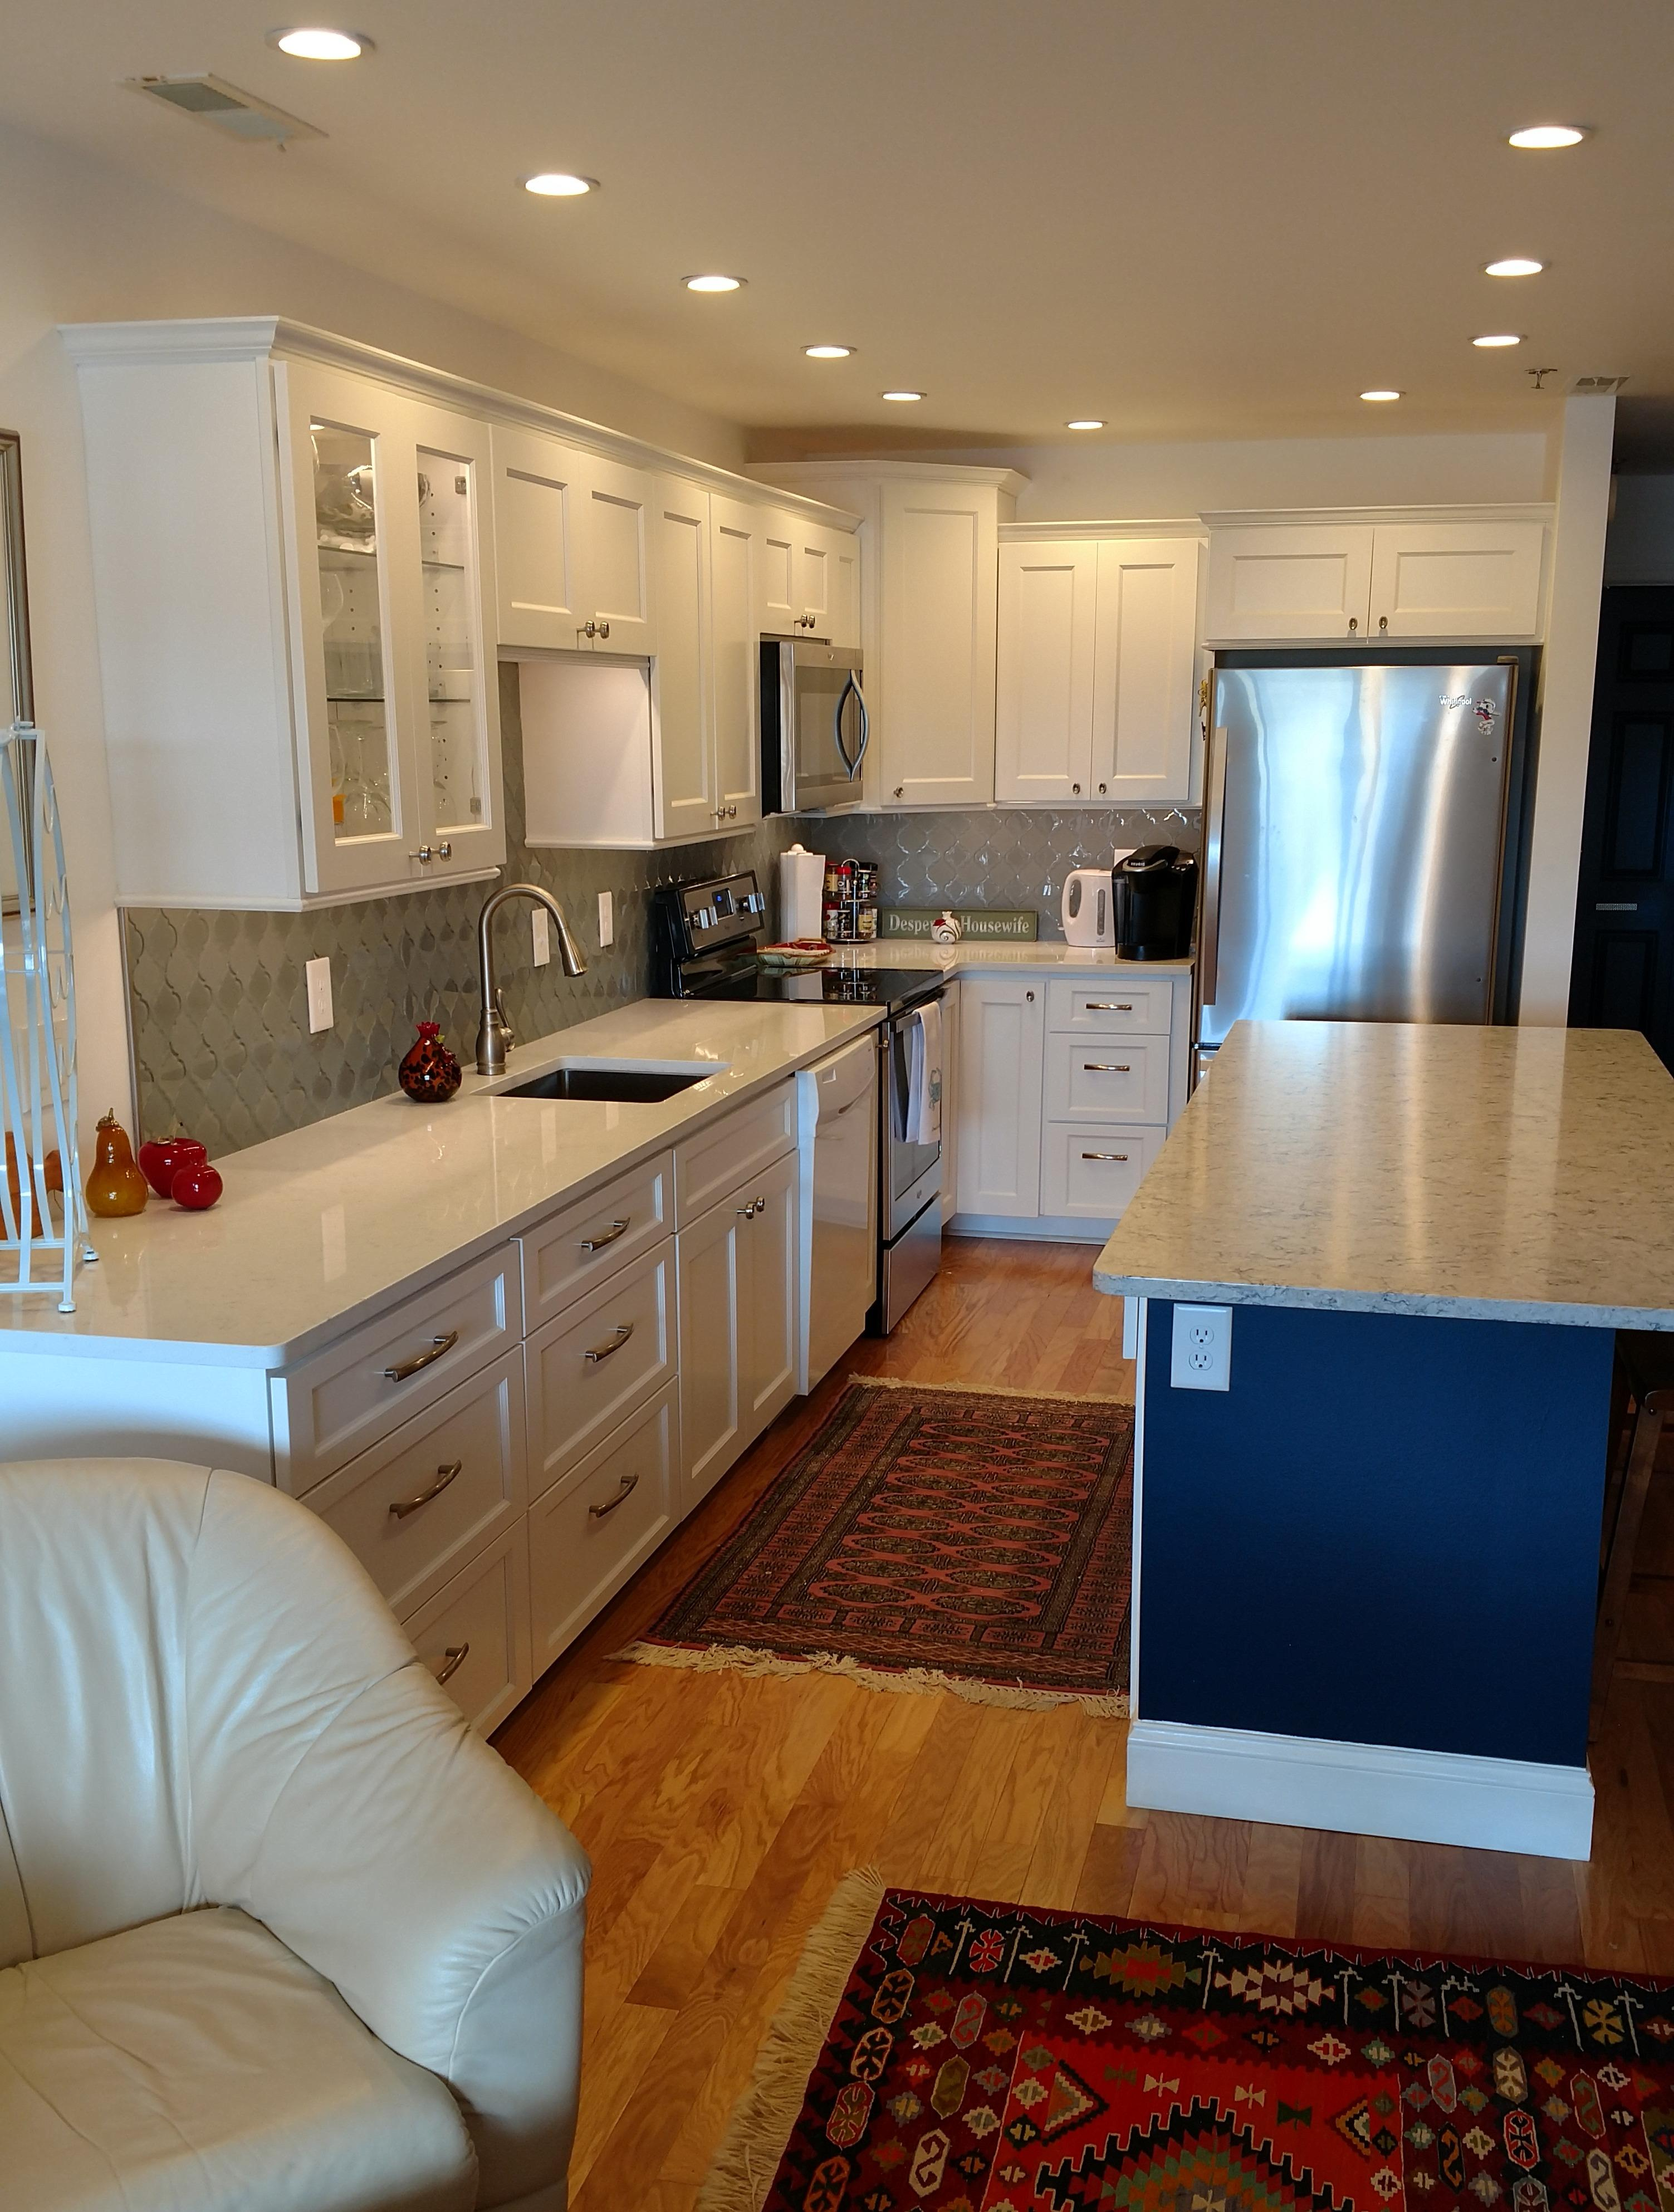 Accurate Upgrades Home Improvements LLC image 14